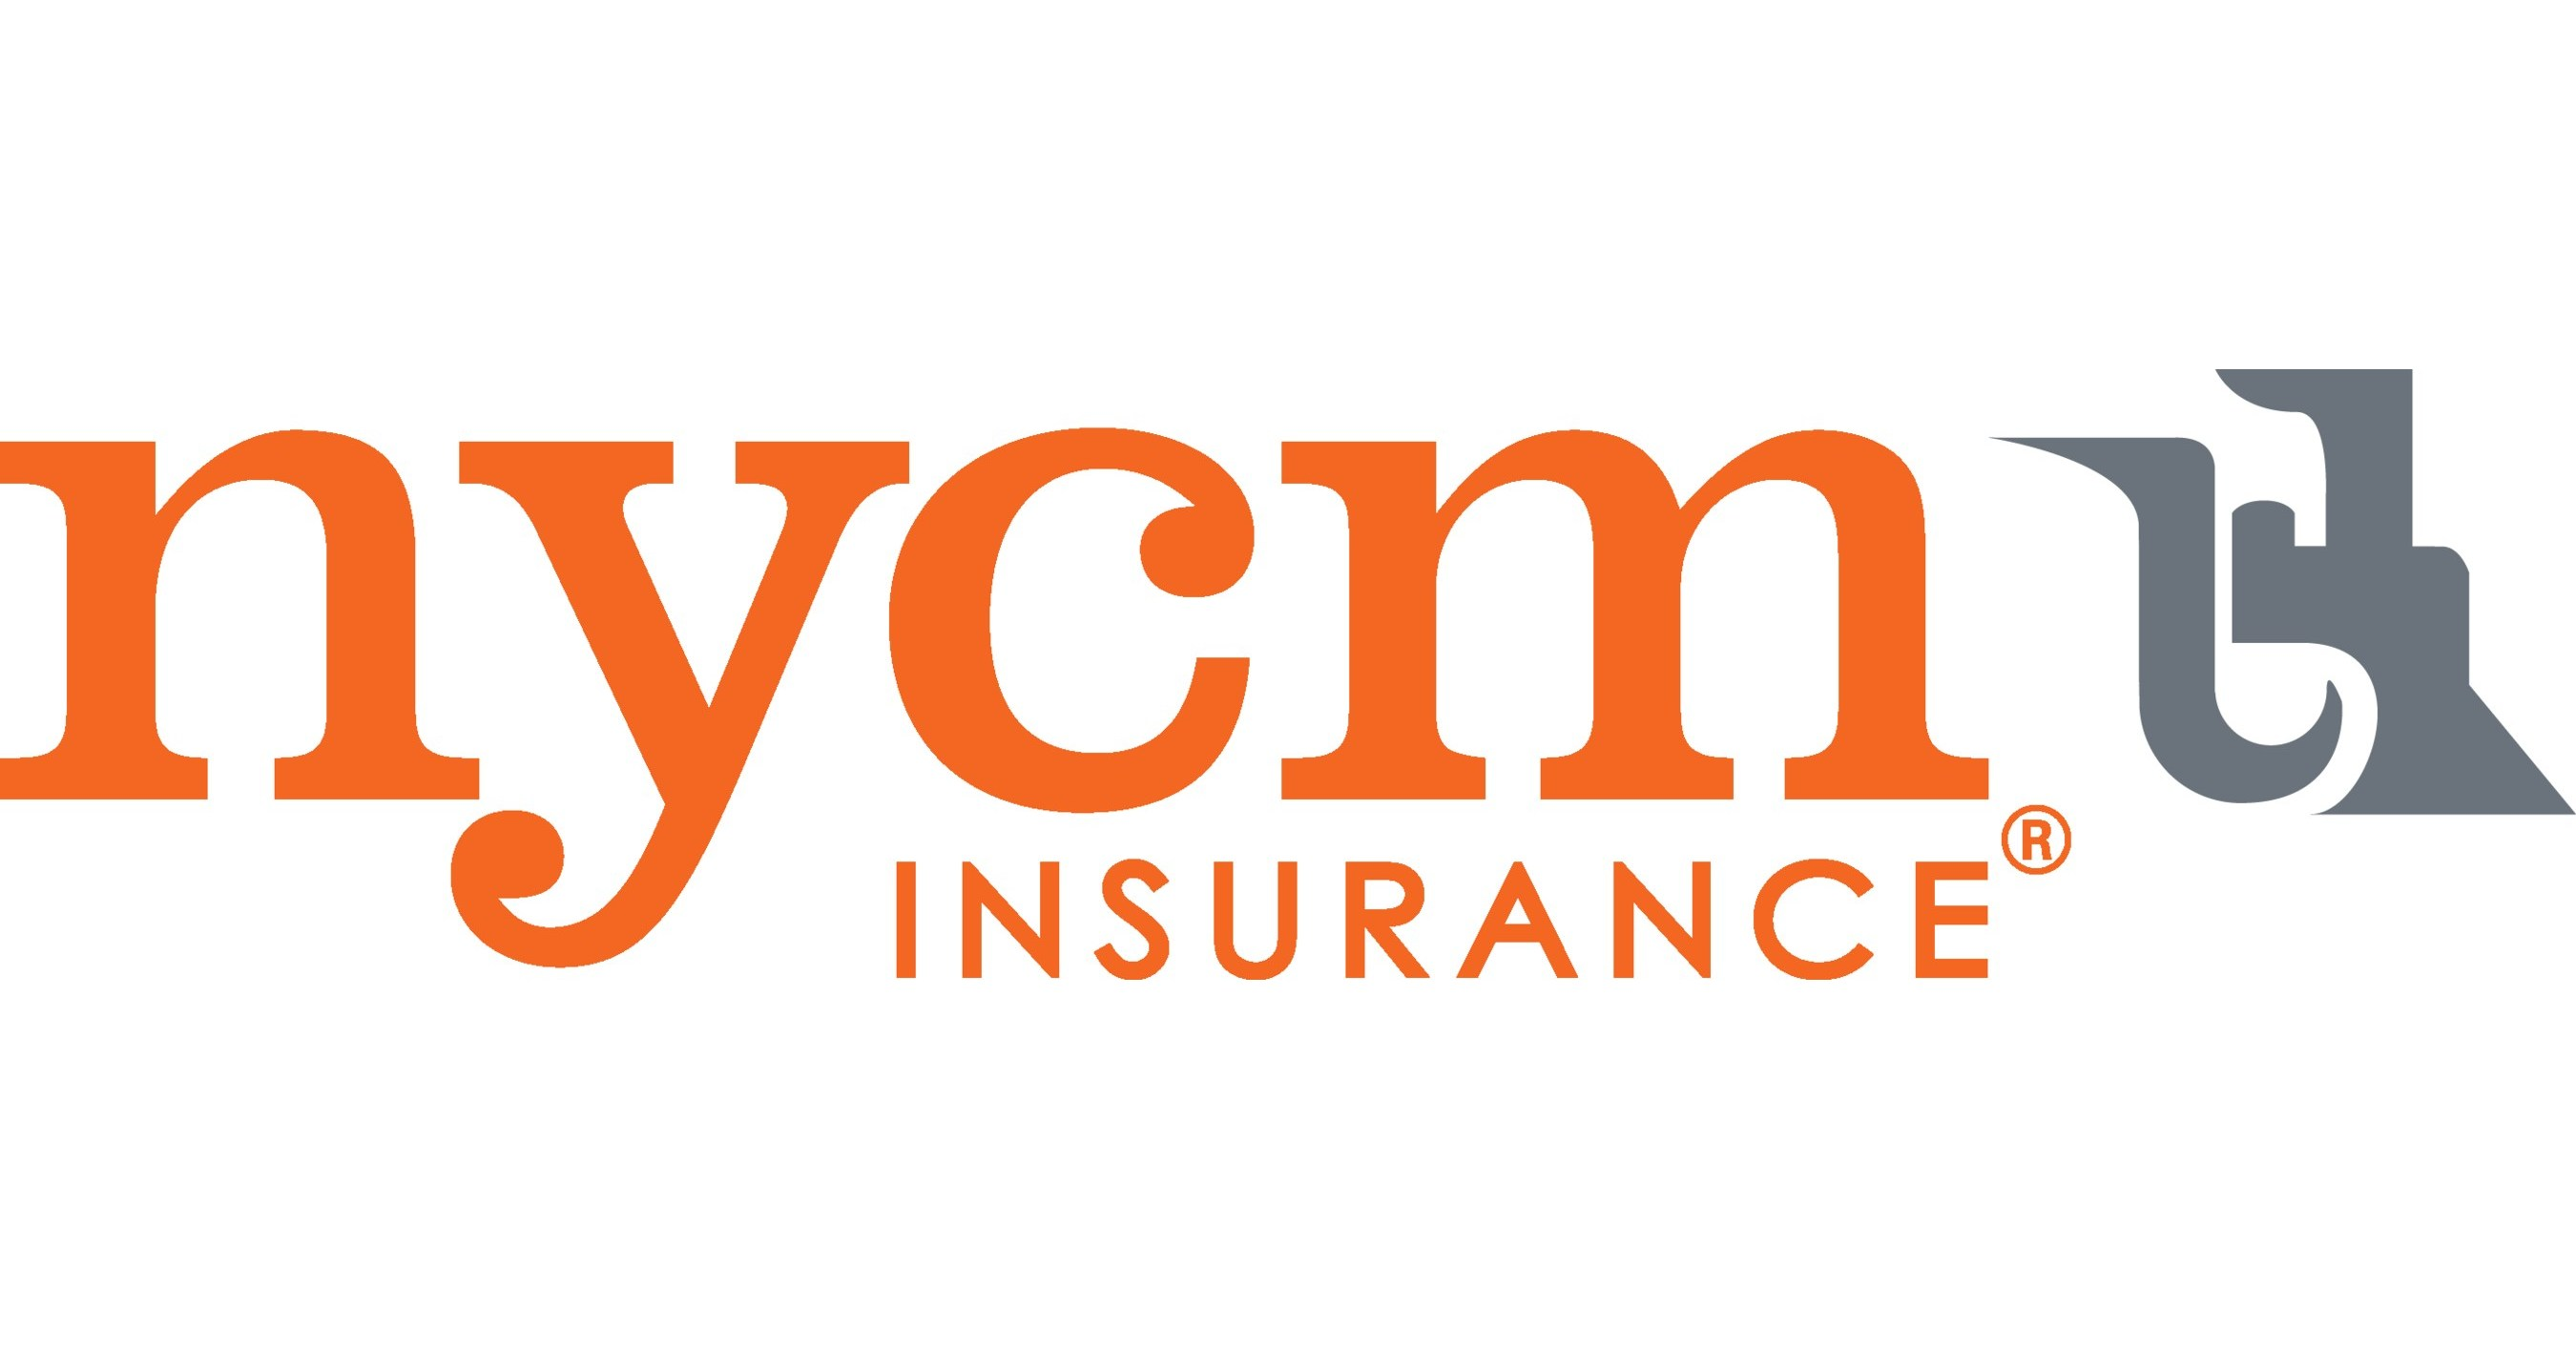 NYCM Insurance Named Among Nation's Best And Brightest In Wellness